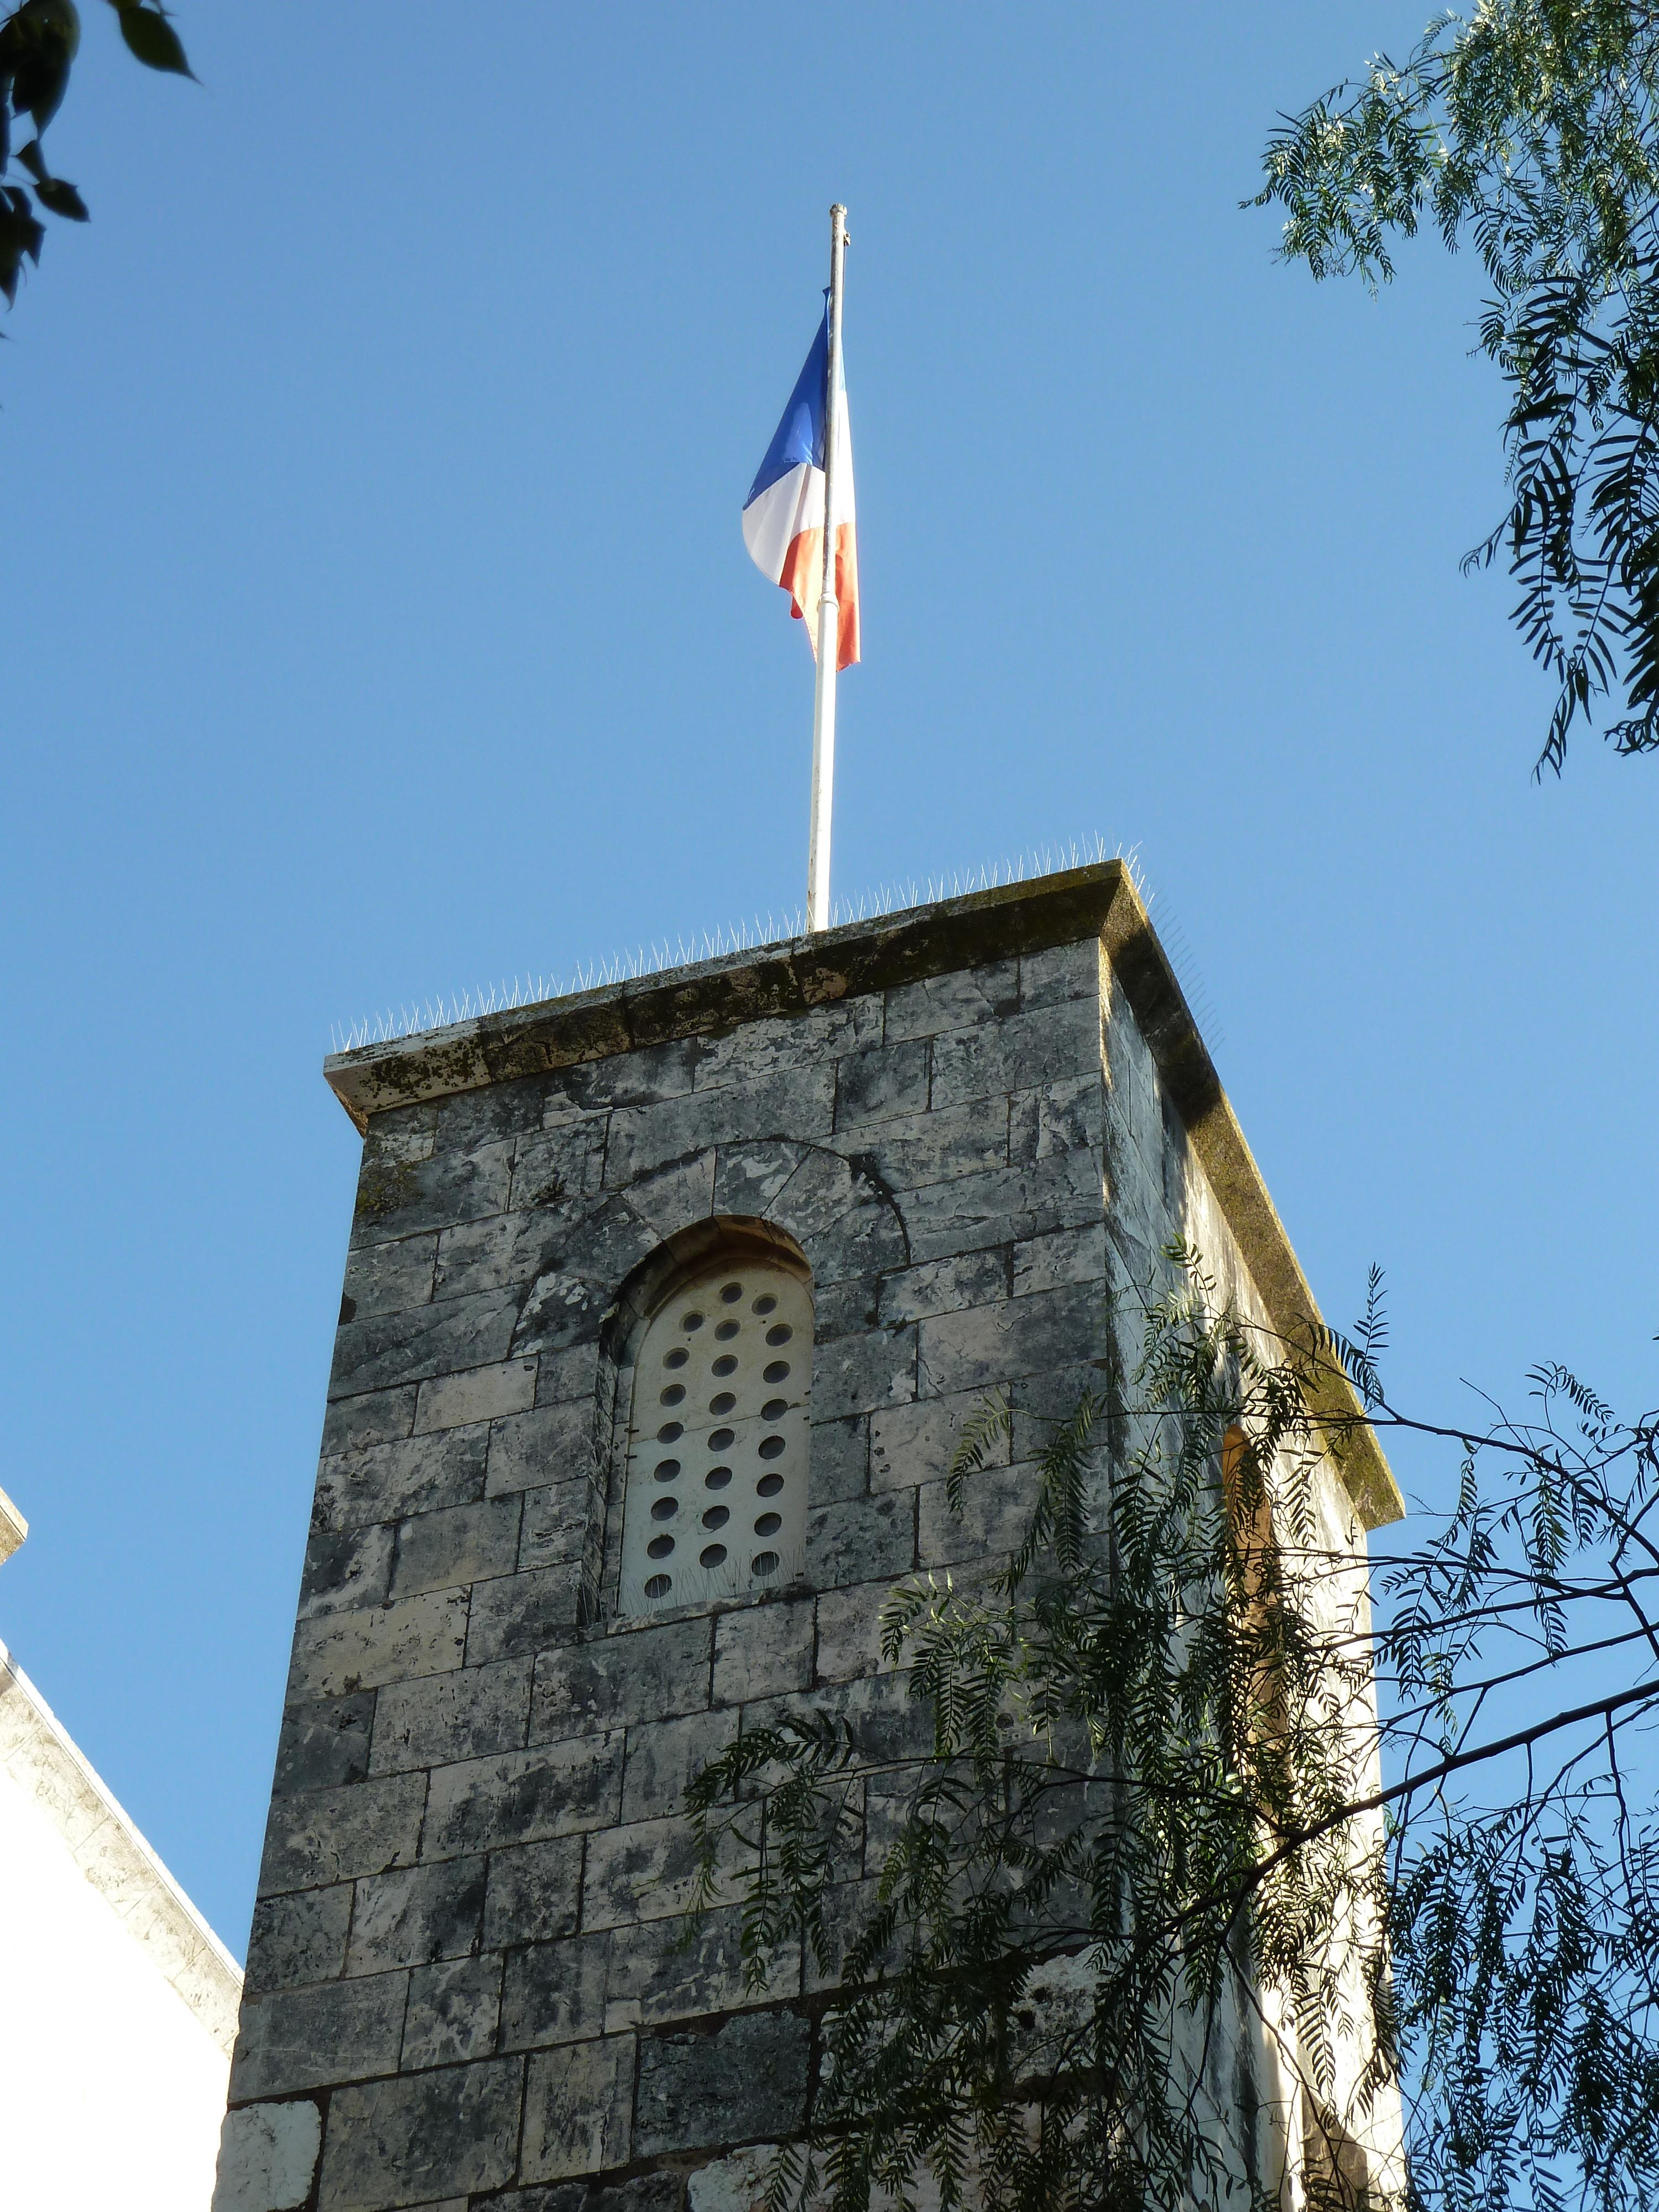 https://i2.wp.com/upload.wikimedia.org/wikipedia/commons/b/b3/Old_Jerusalem_Saint-Anne_church_french_flag.jpg